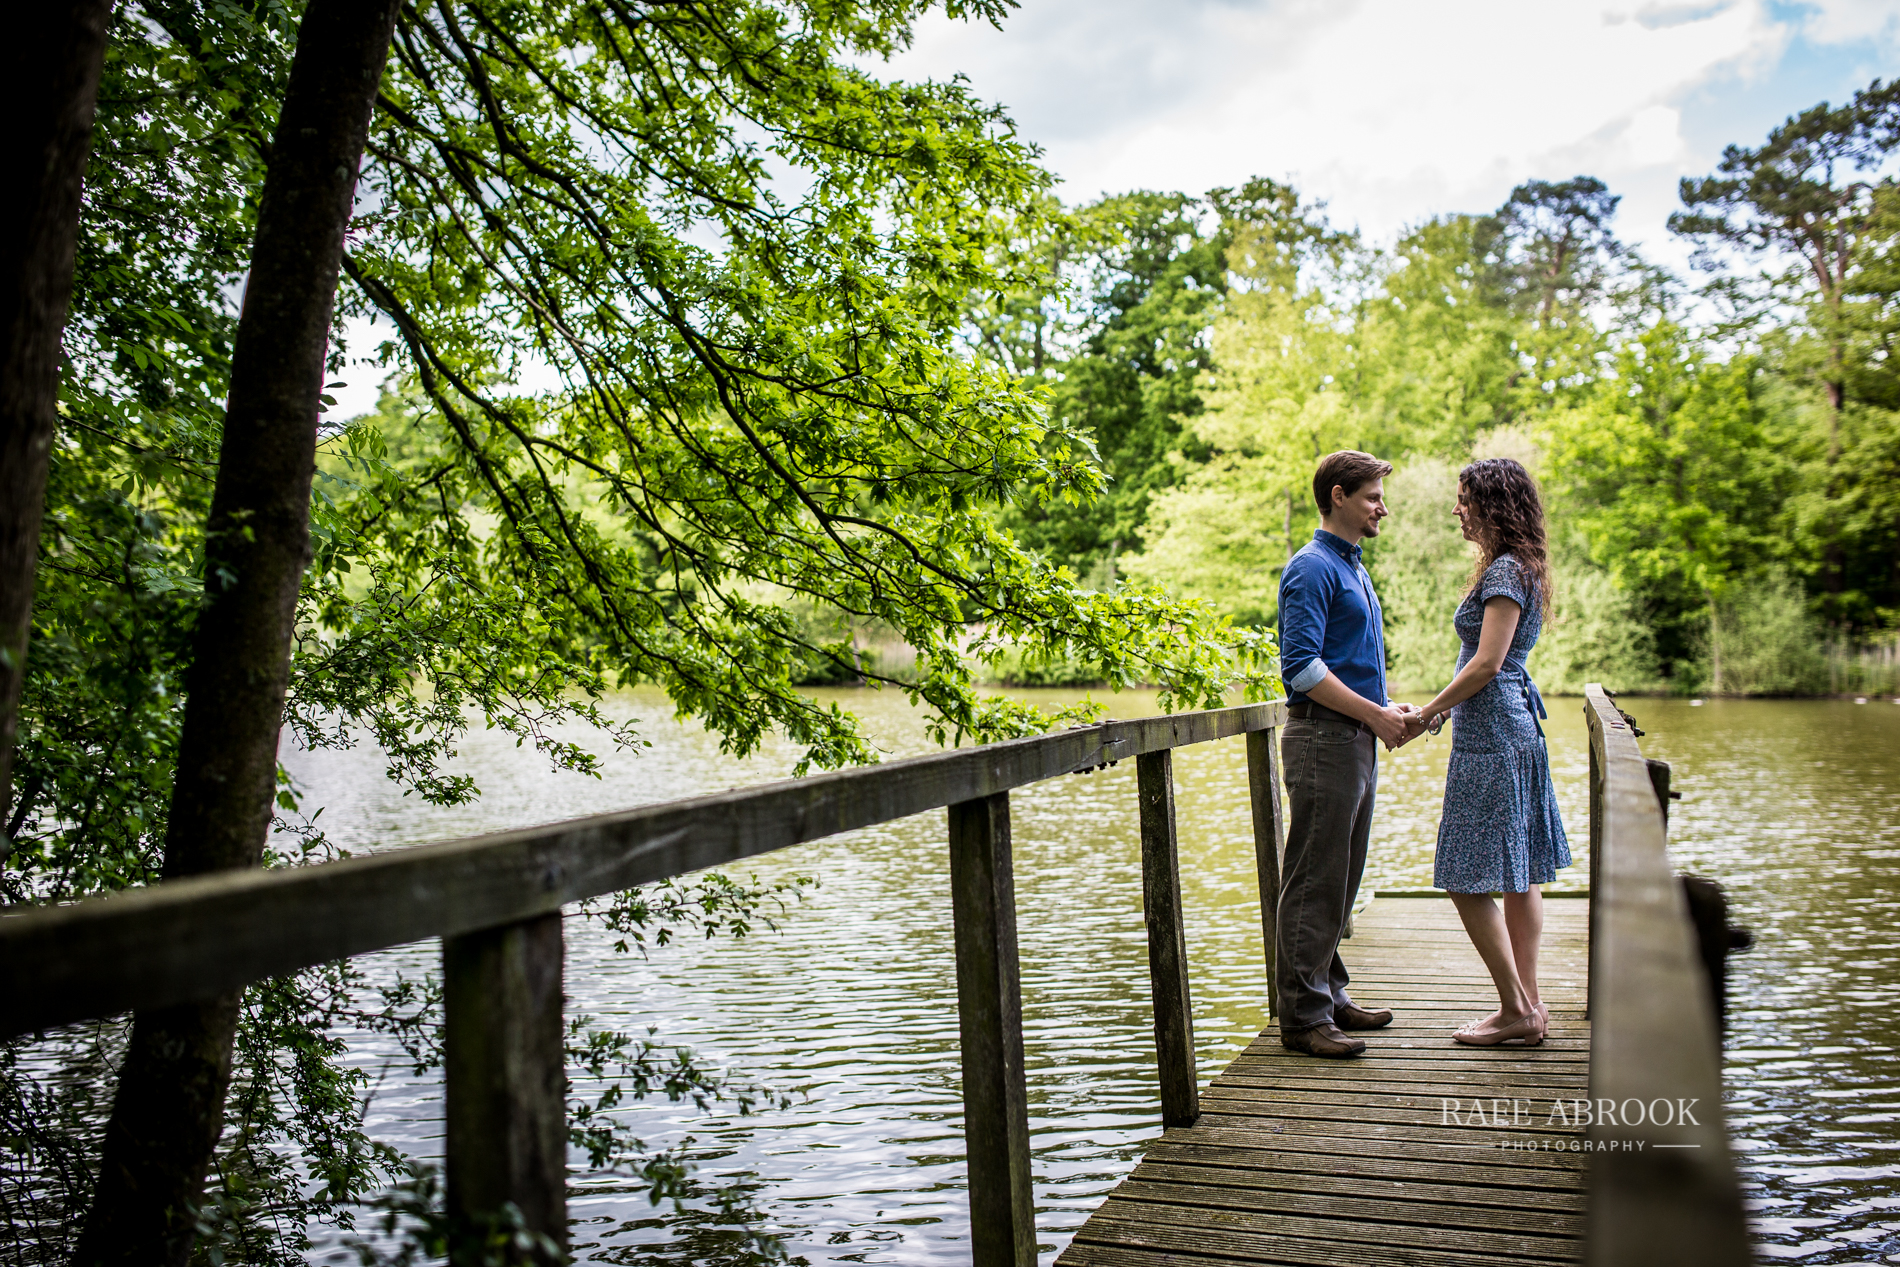 jade & sean engagement shoot knebworth park house hertfordshire-1020.jpg